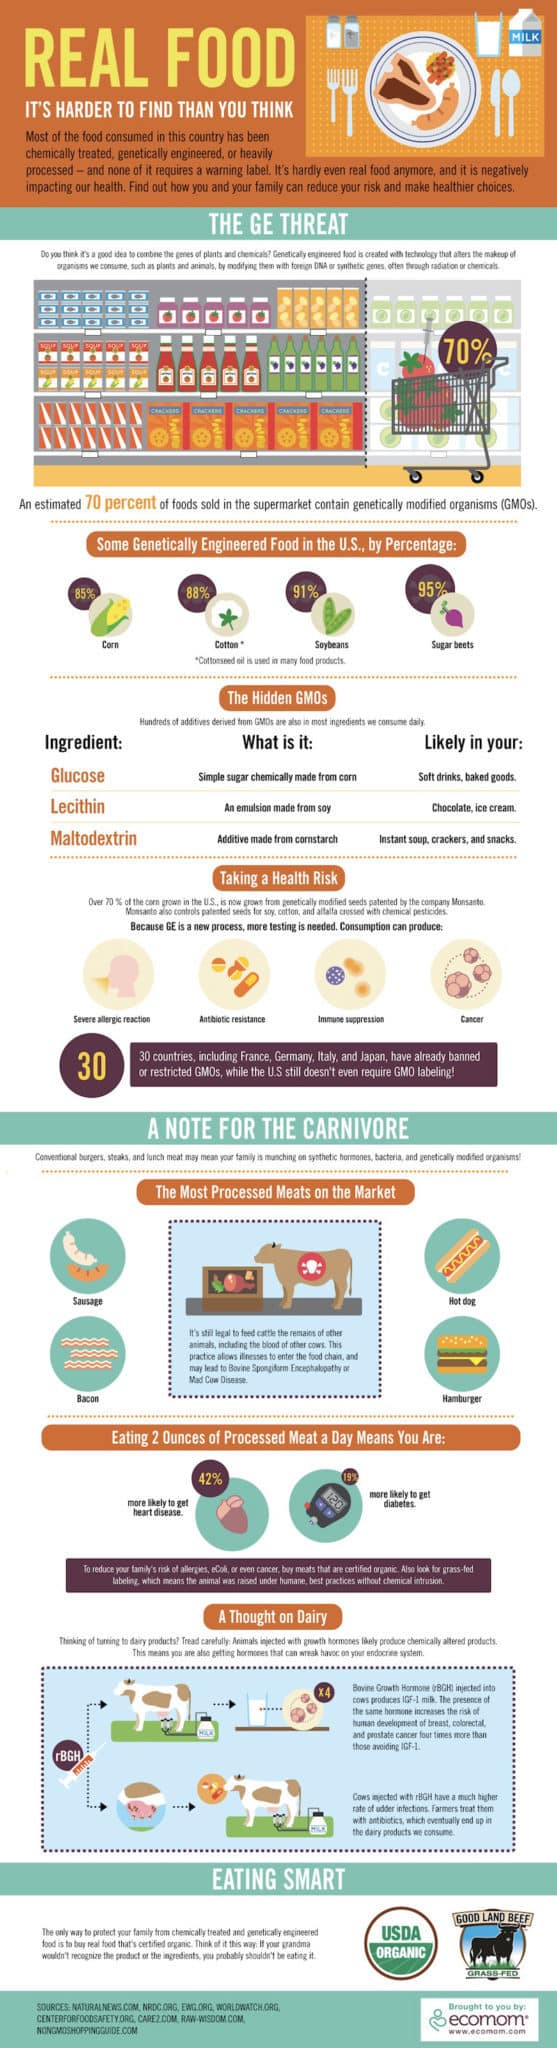 REAL FOOD: It's harder to find than you think [infographic]